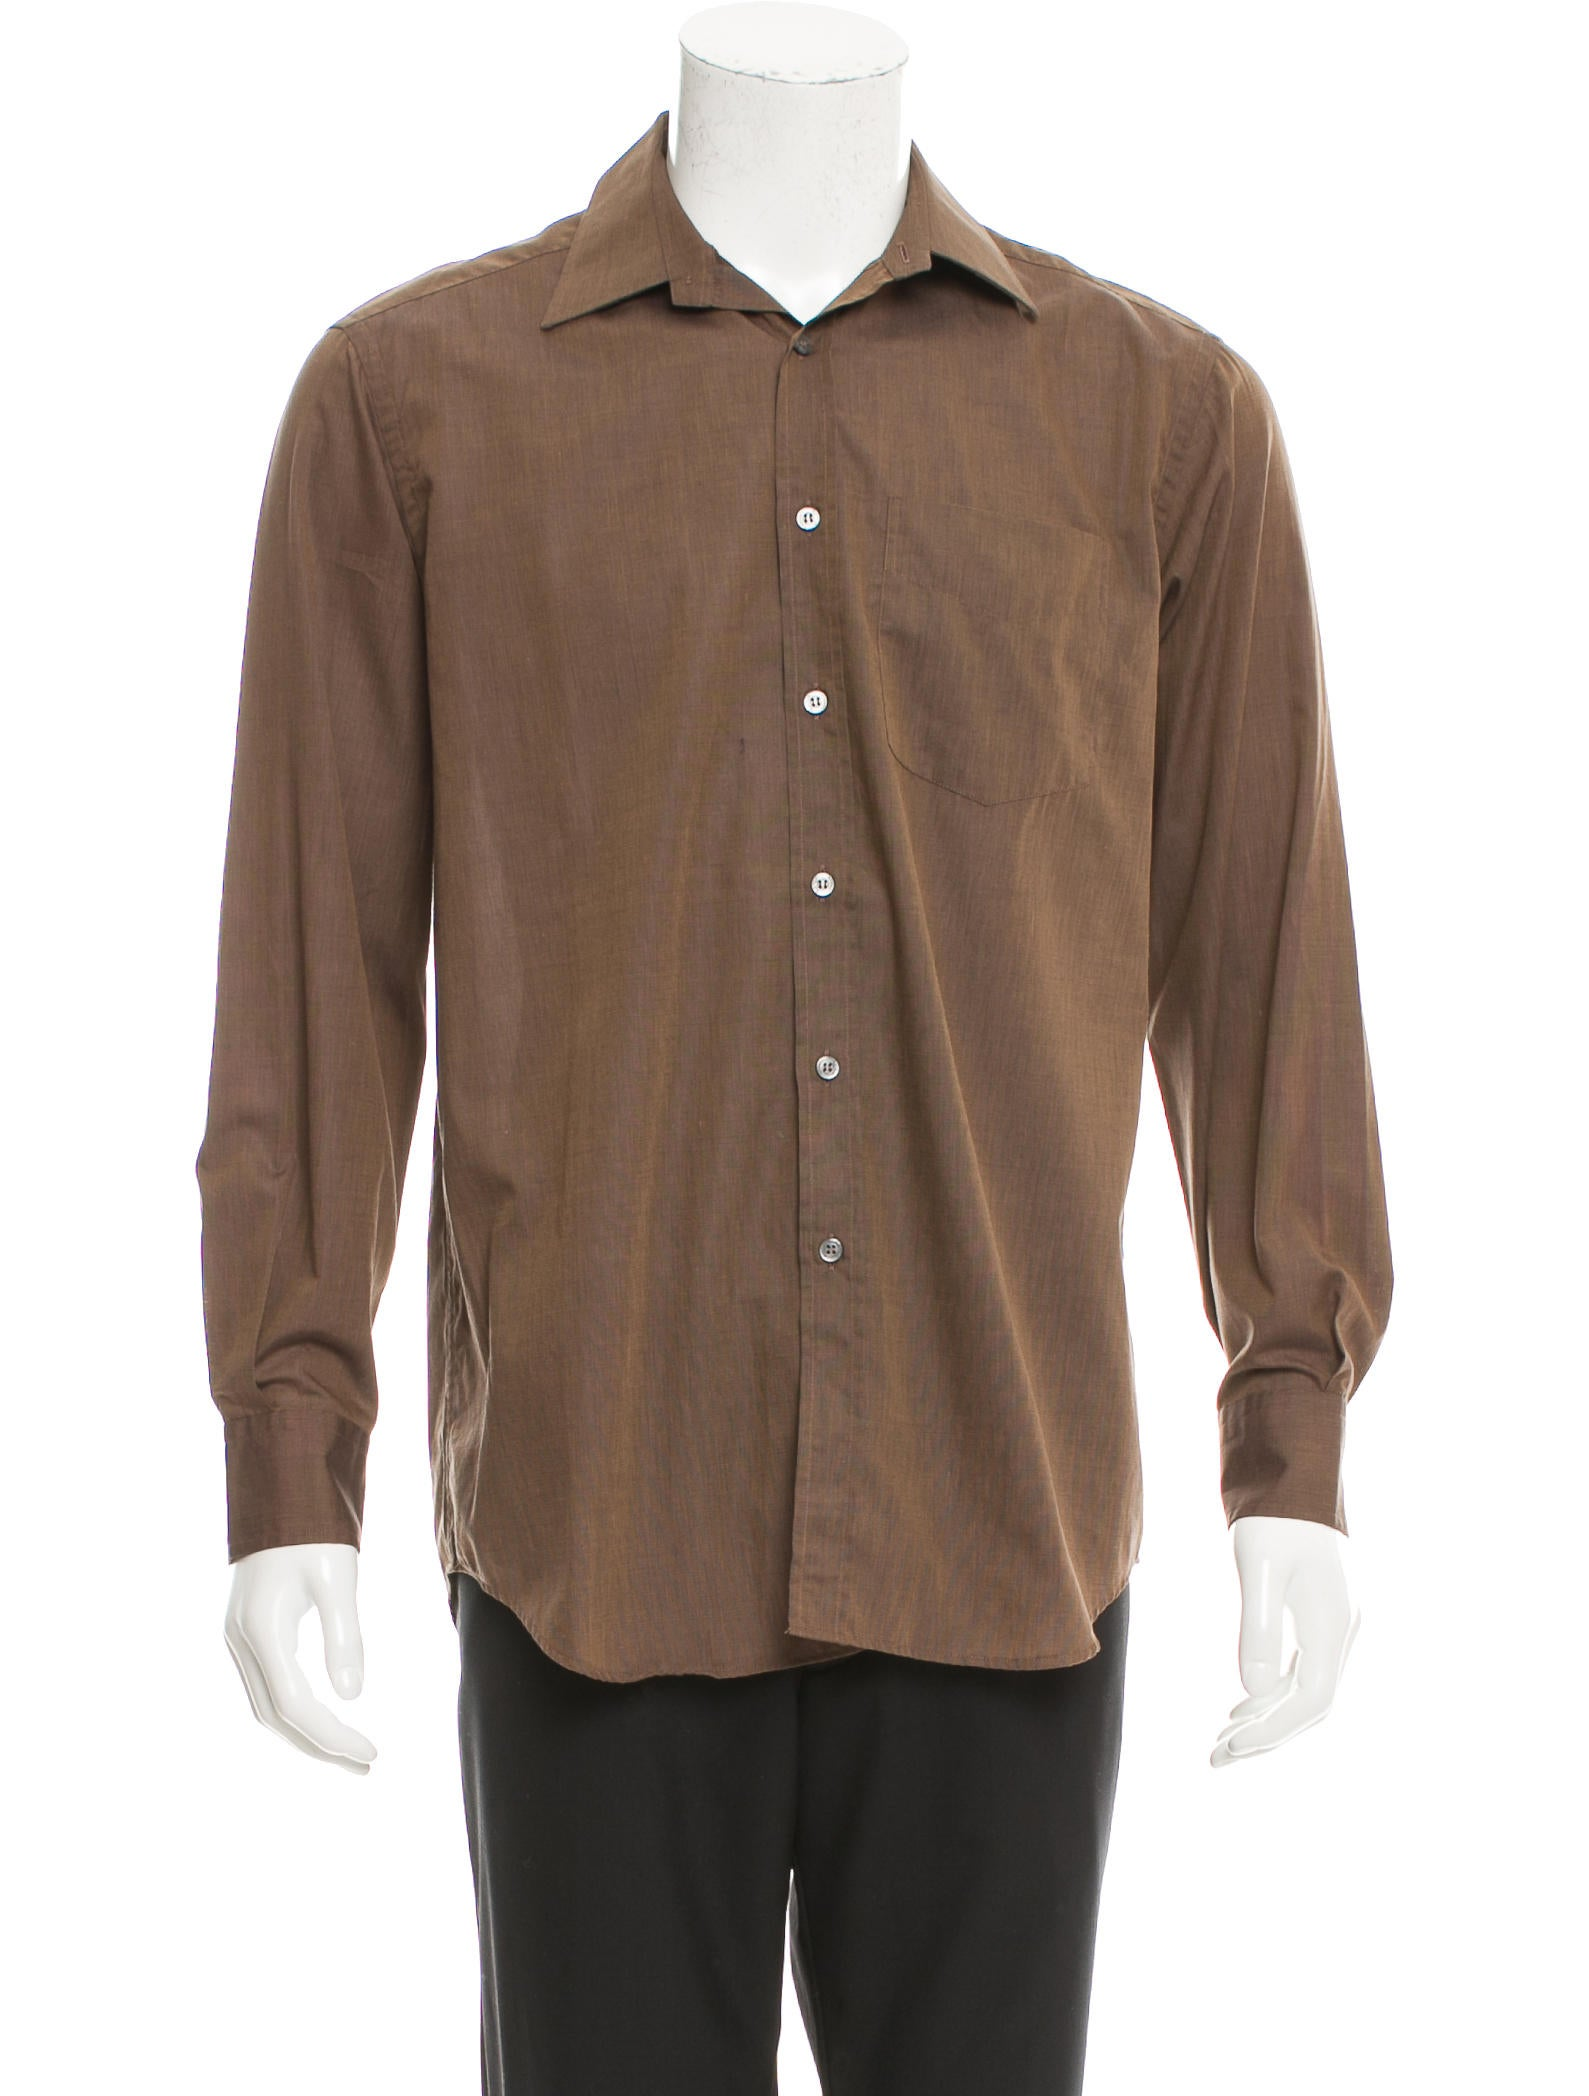 Paul Smith Long Sleeve Button Up Shirt Clothing